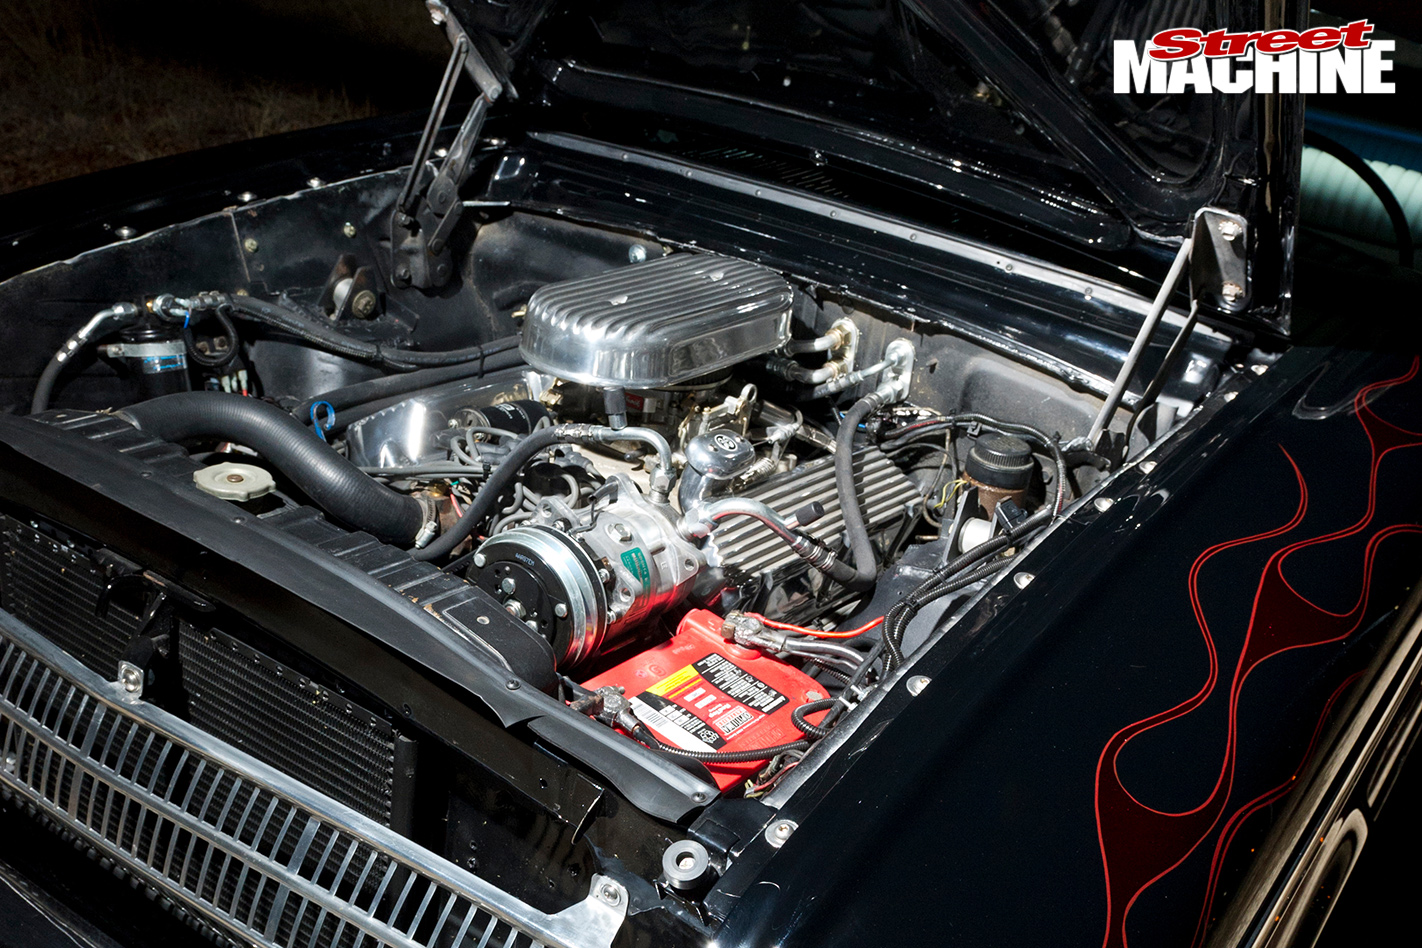 1961-Ford -Falcon -Wagon -engine